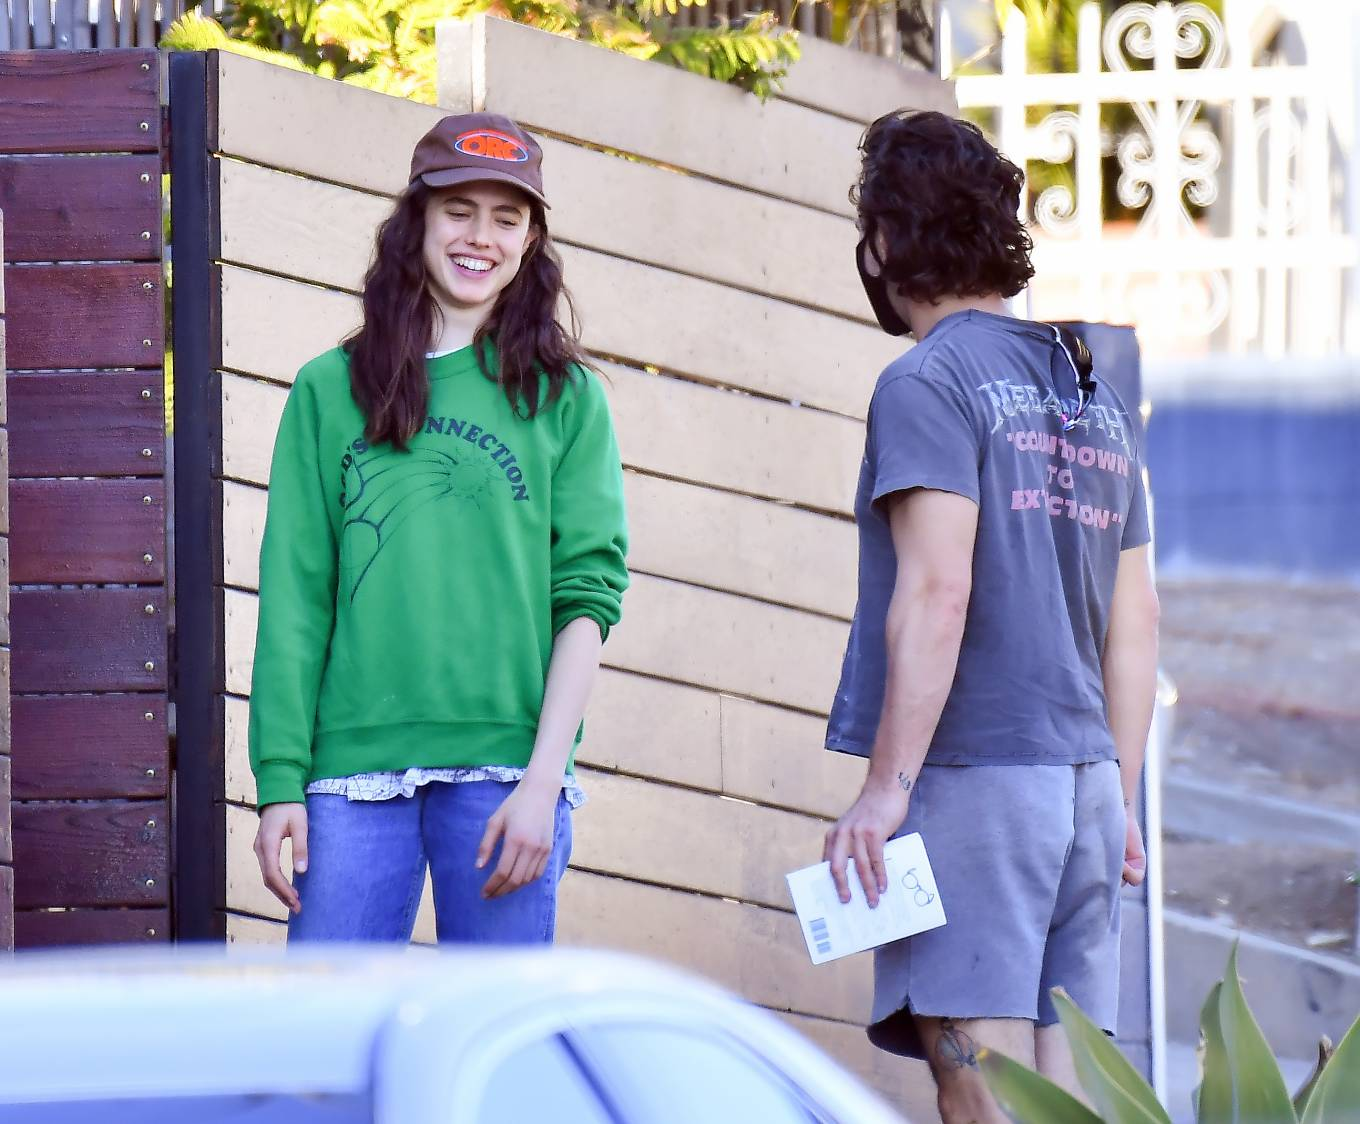 Margaret Qualley and Shia LaBeouf - Stop by a friend's house in Studio City